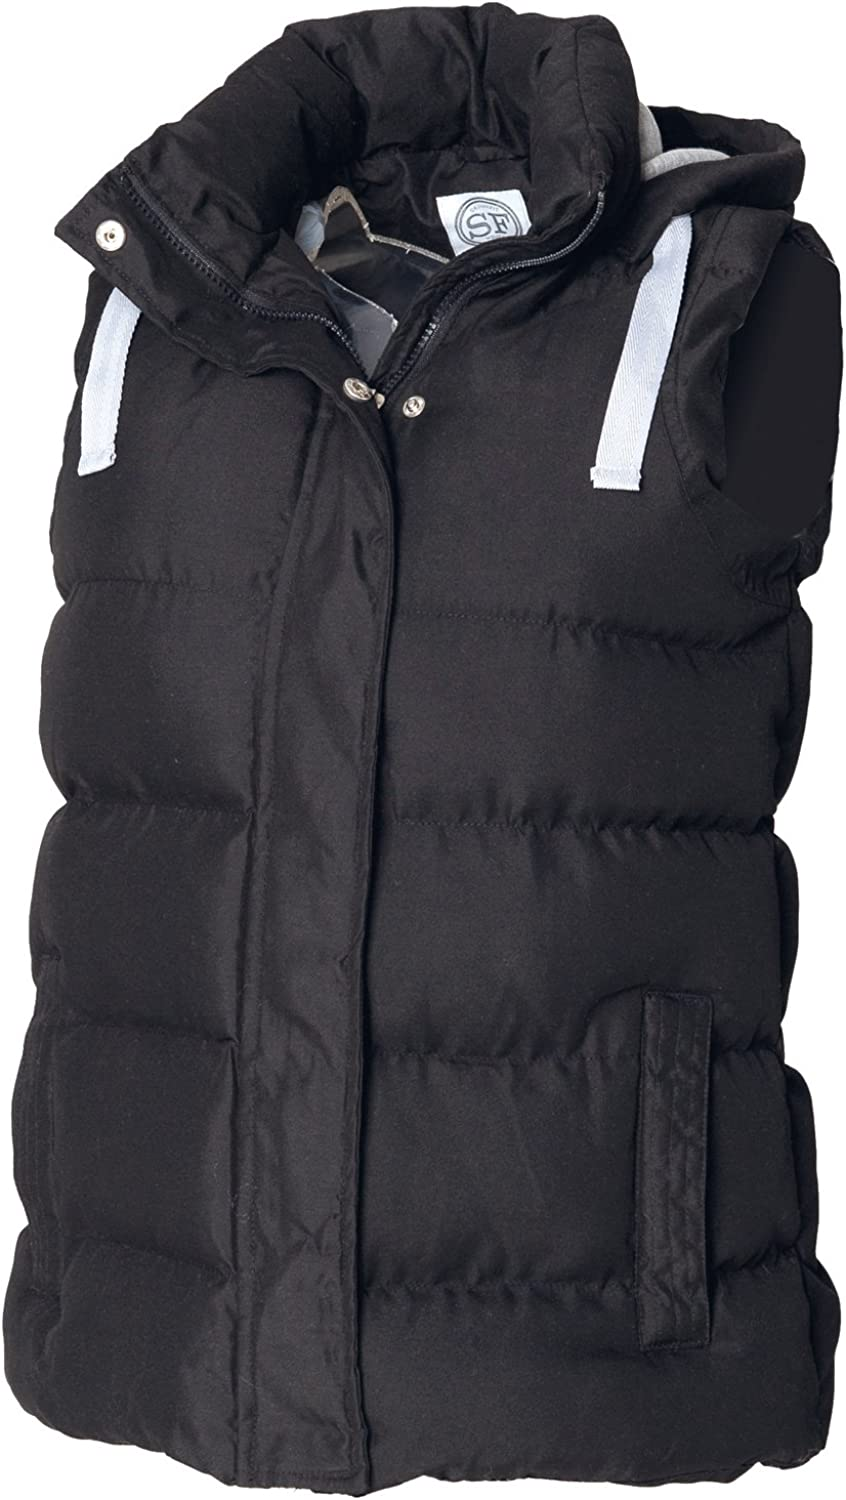 Skinni Fit Padded Gilet with Detachable Hood